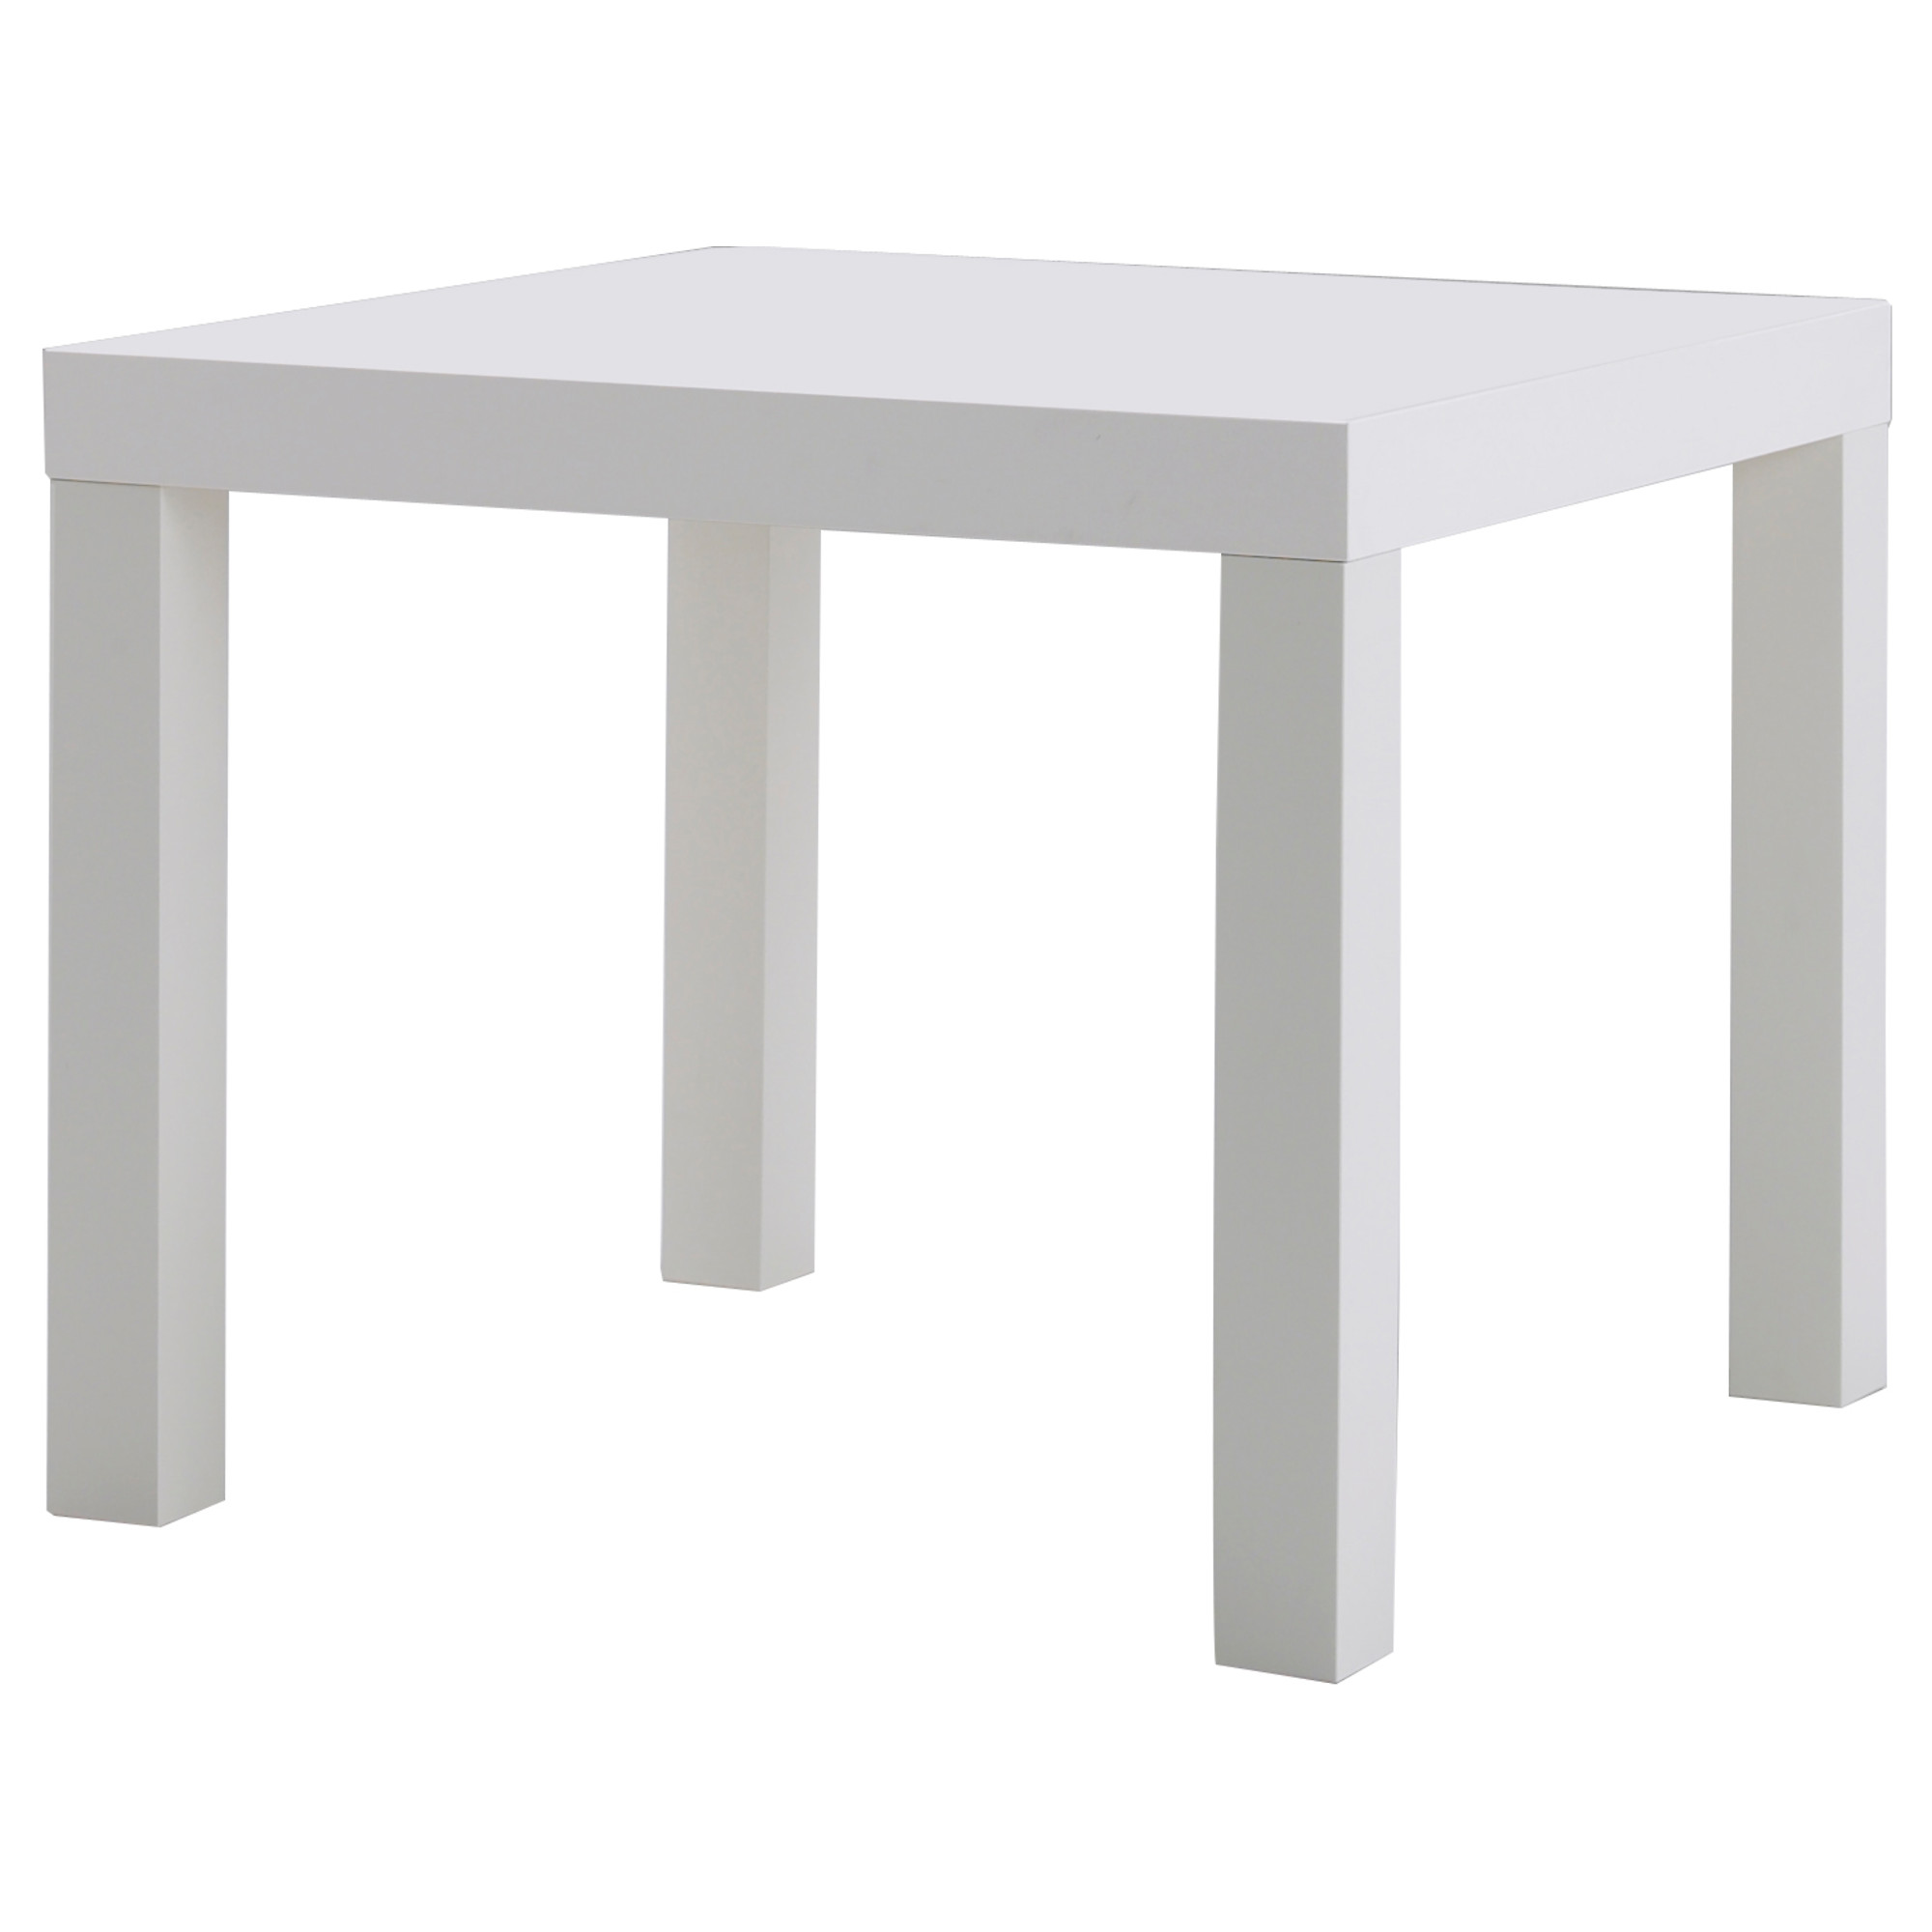 white table lack side table - white, 21 5/8x21 5/8  ERDLFTN